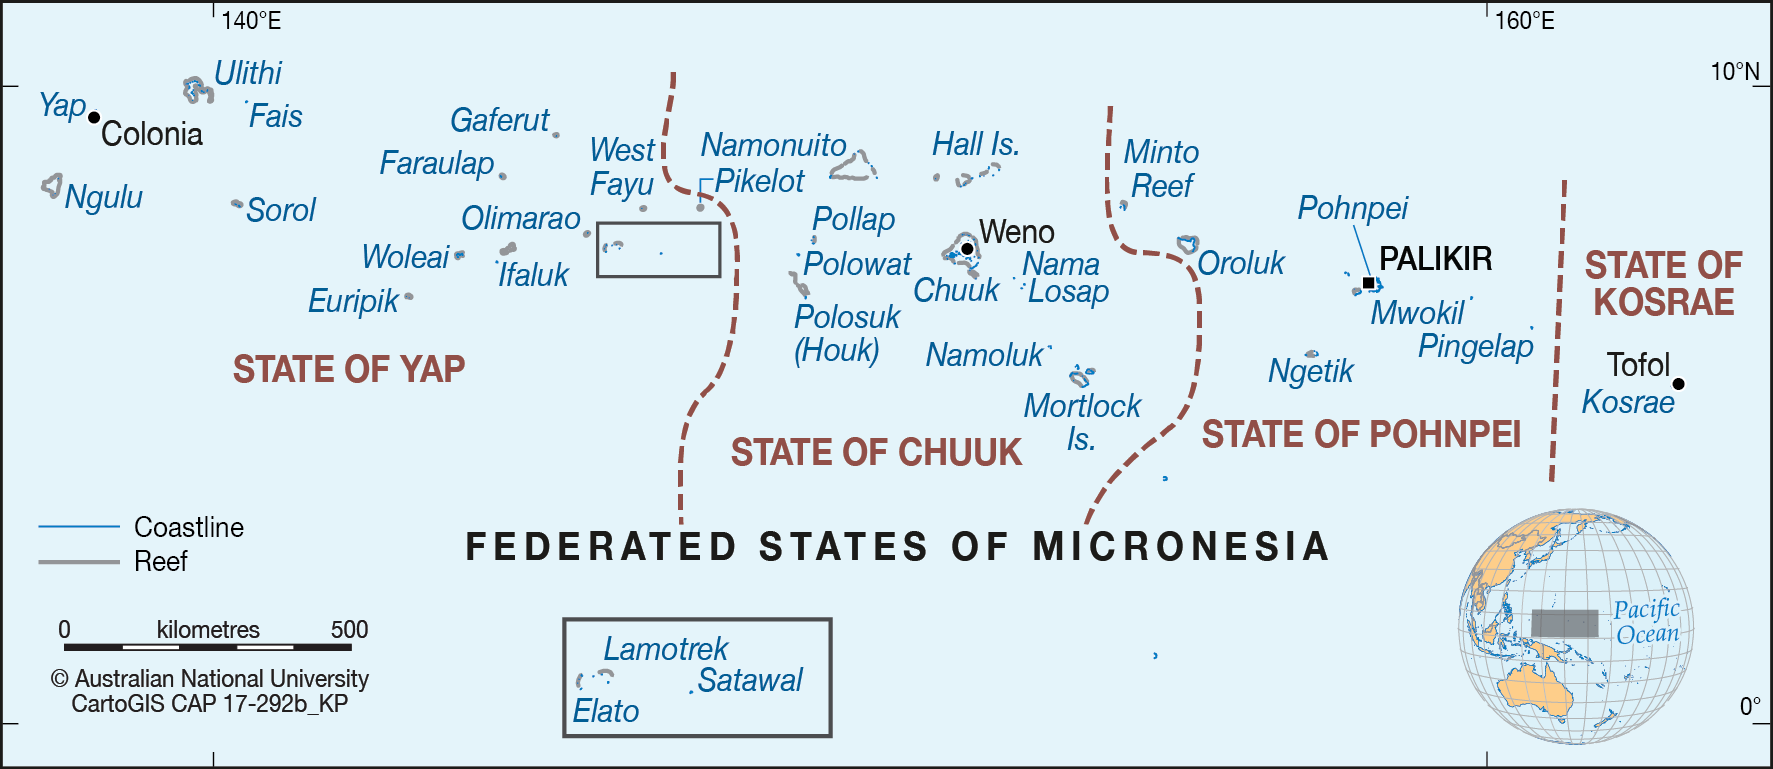 Federated states of micronesia cartogis services maps online anu map png 18292 kb description colour map of the federated states of micronesia publicscrutiny Gallery